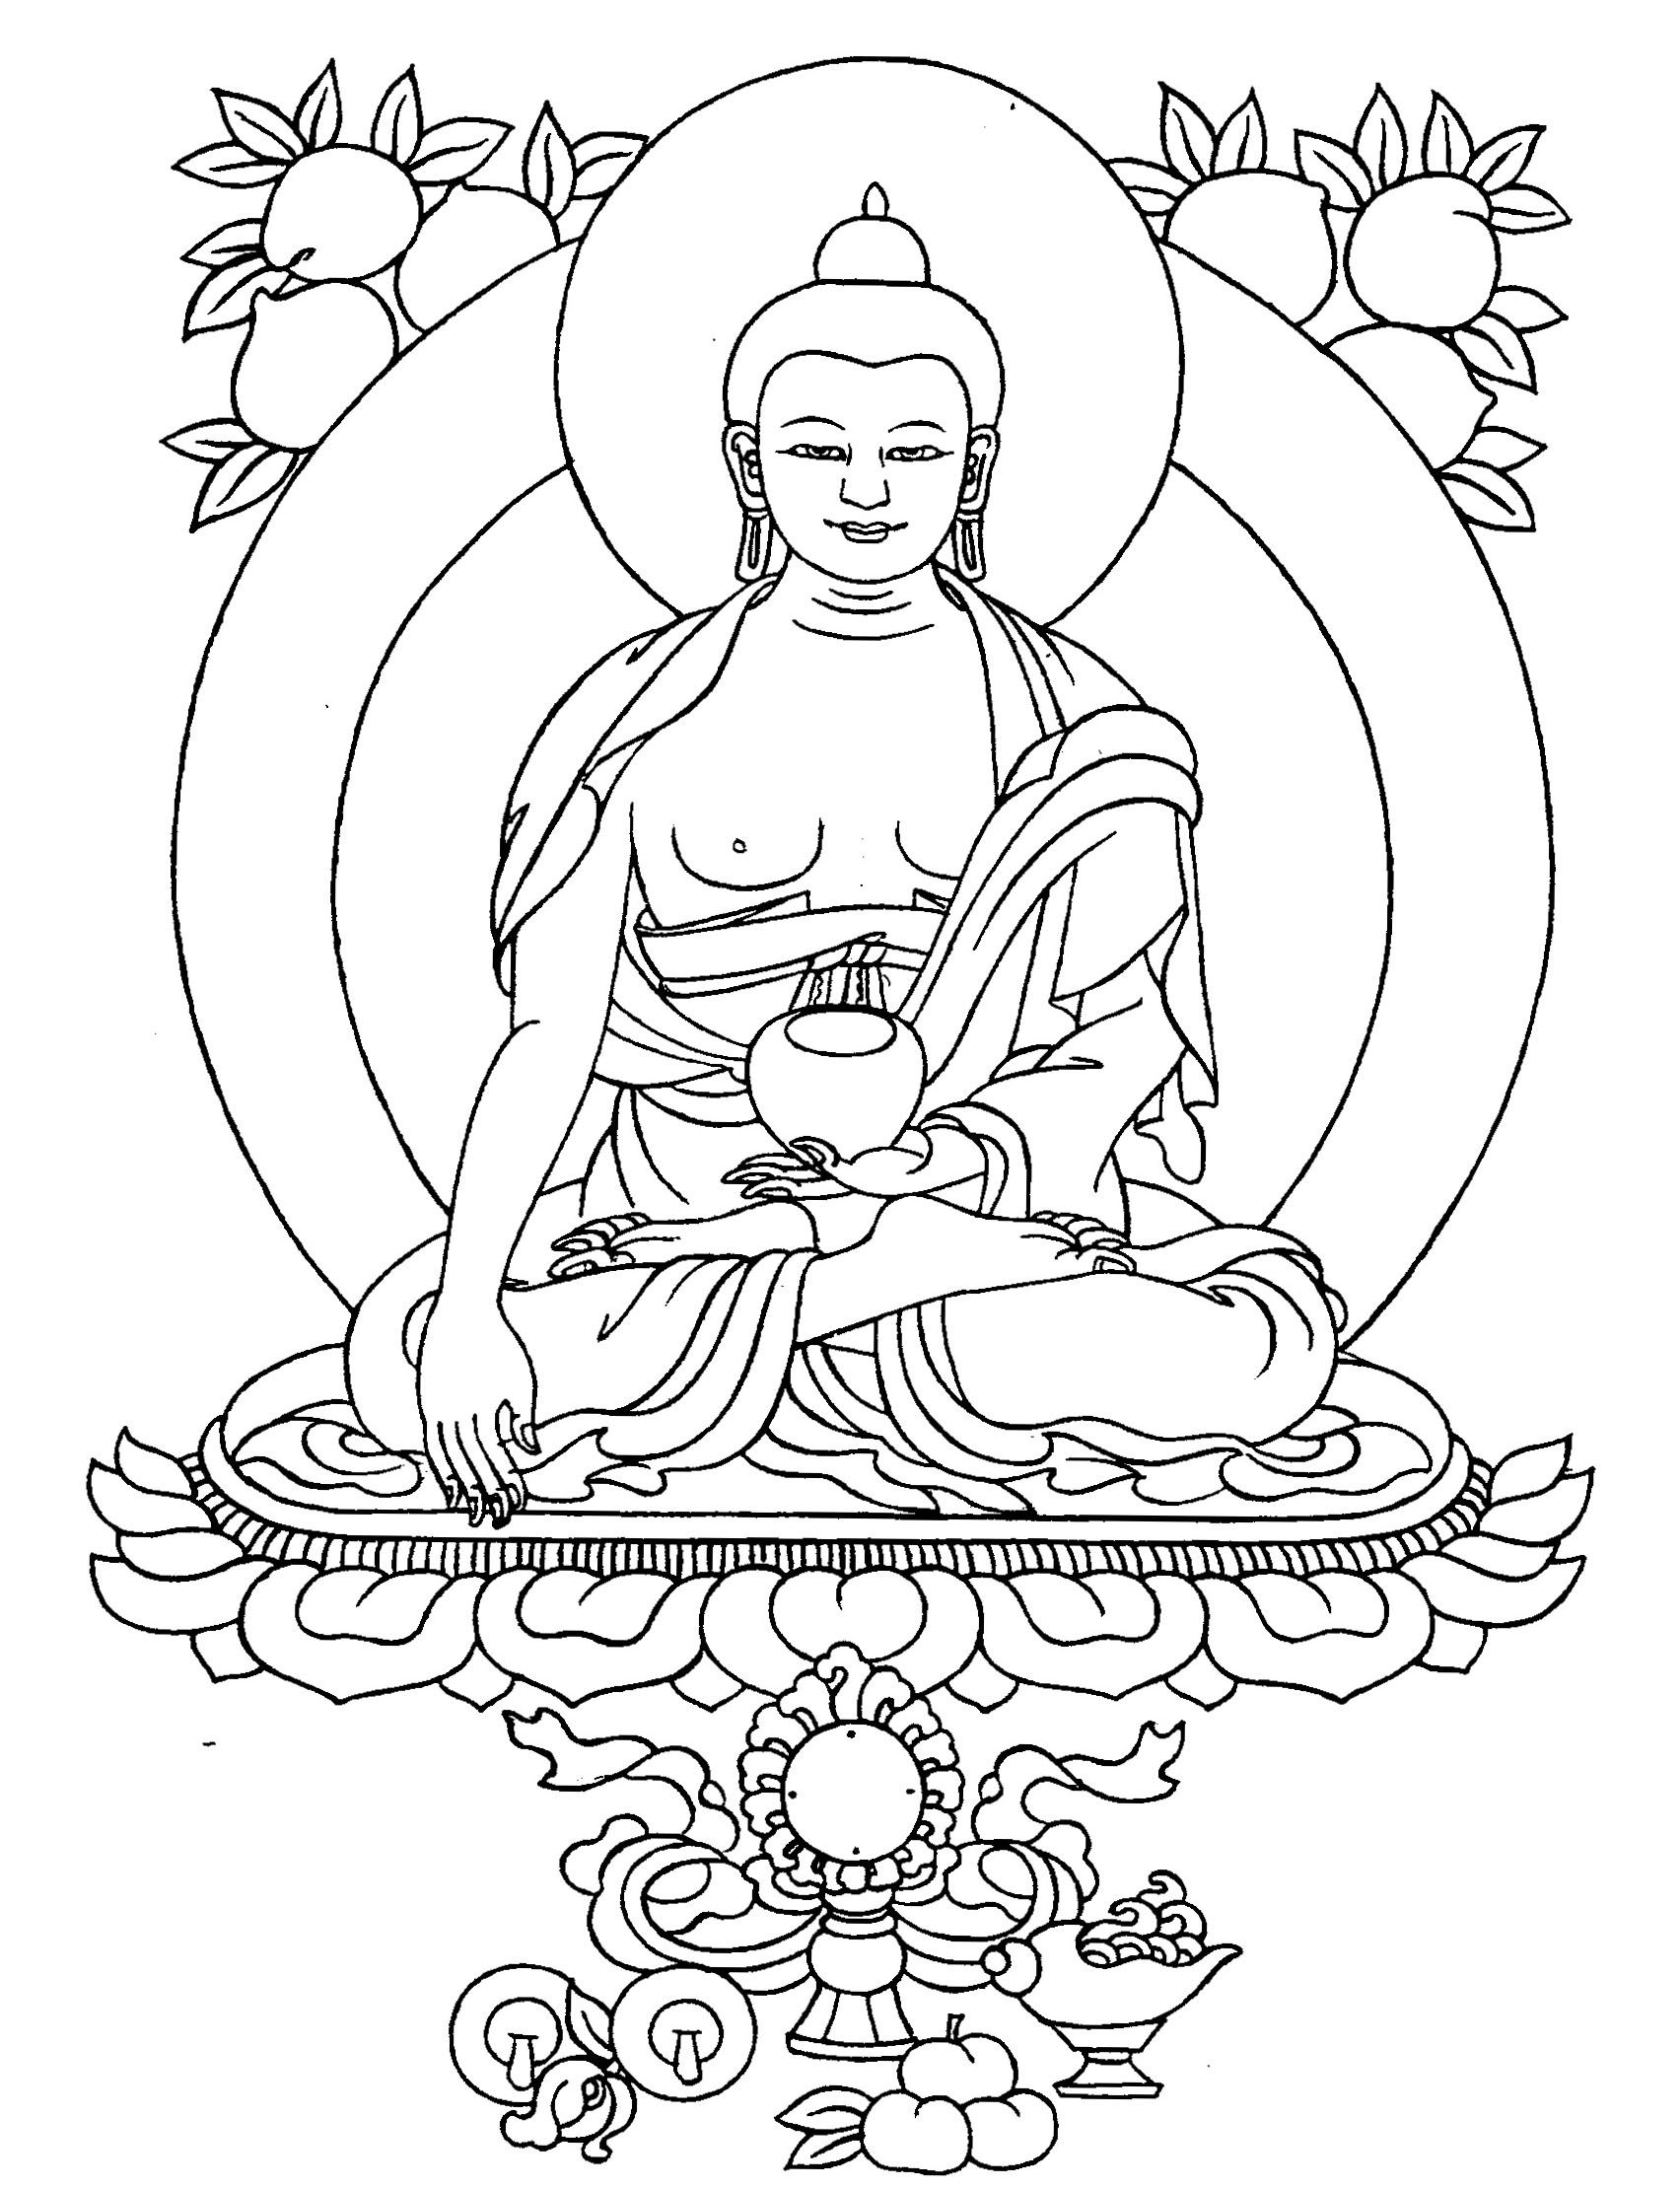 pin on tattoos piercings buddha coloring horse drawing print out count down calendar coloring pages Buddha Coloring Page